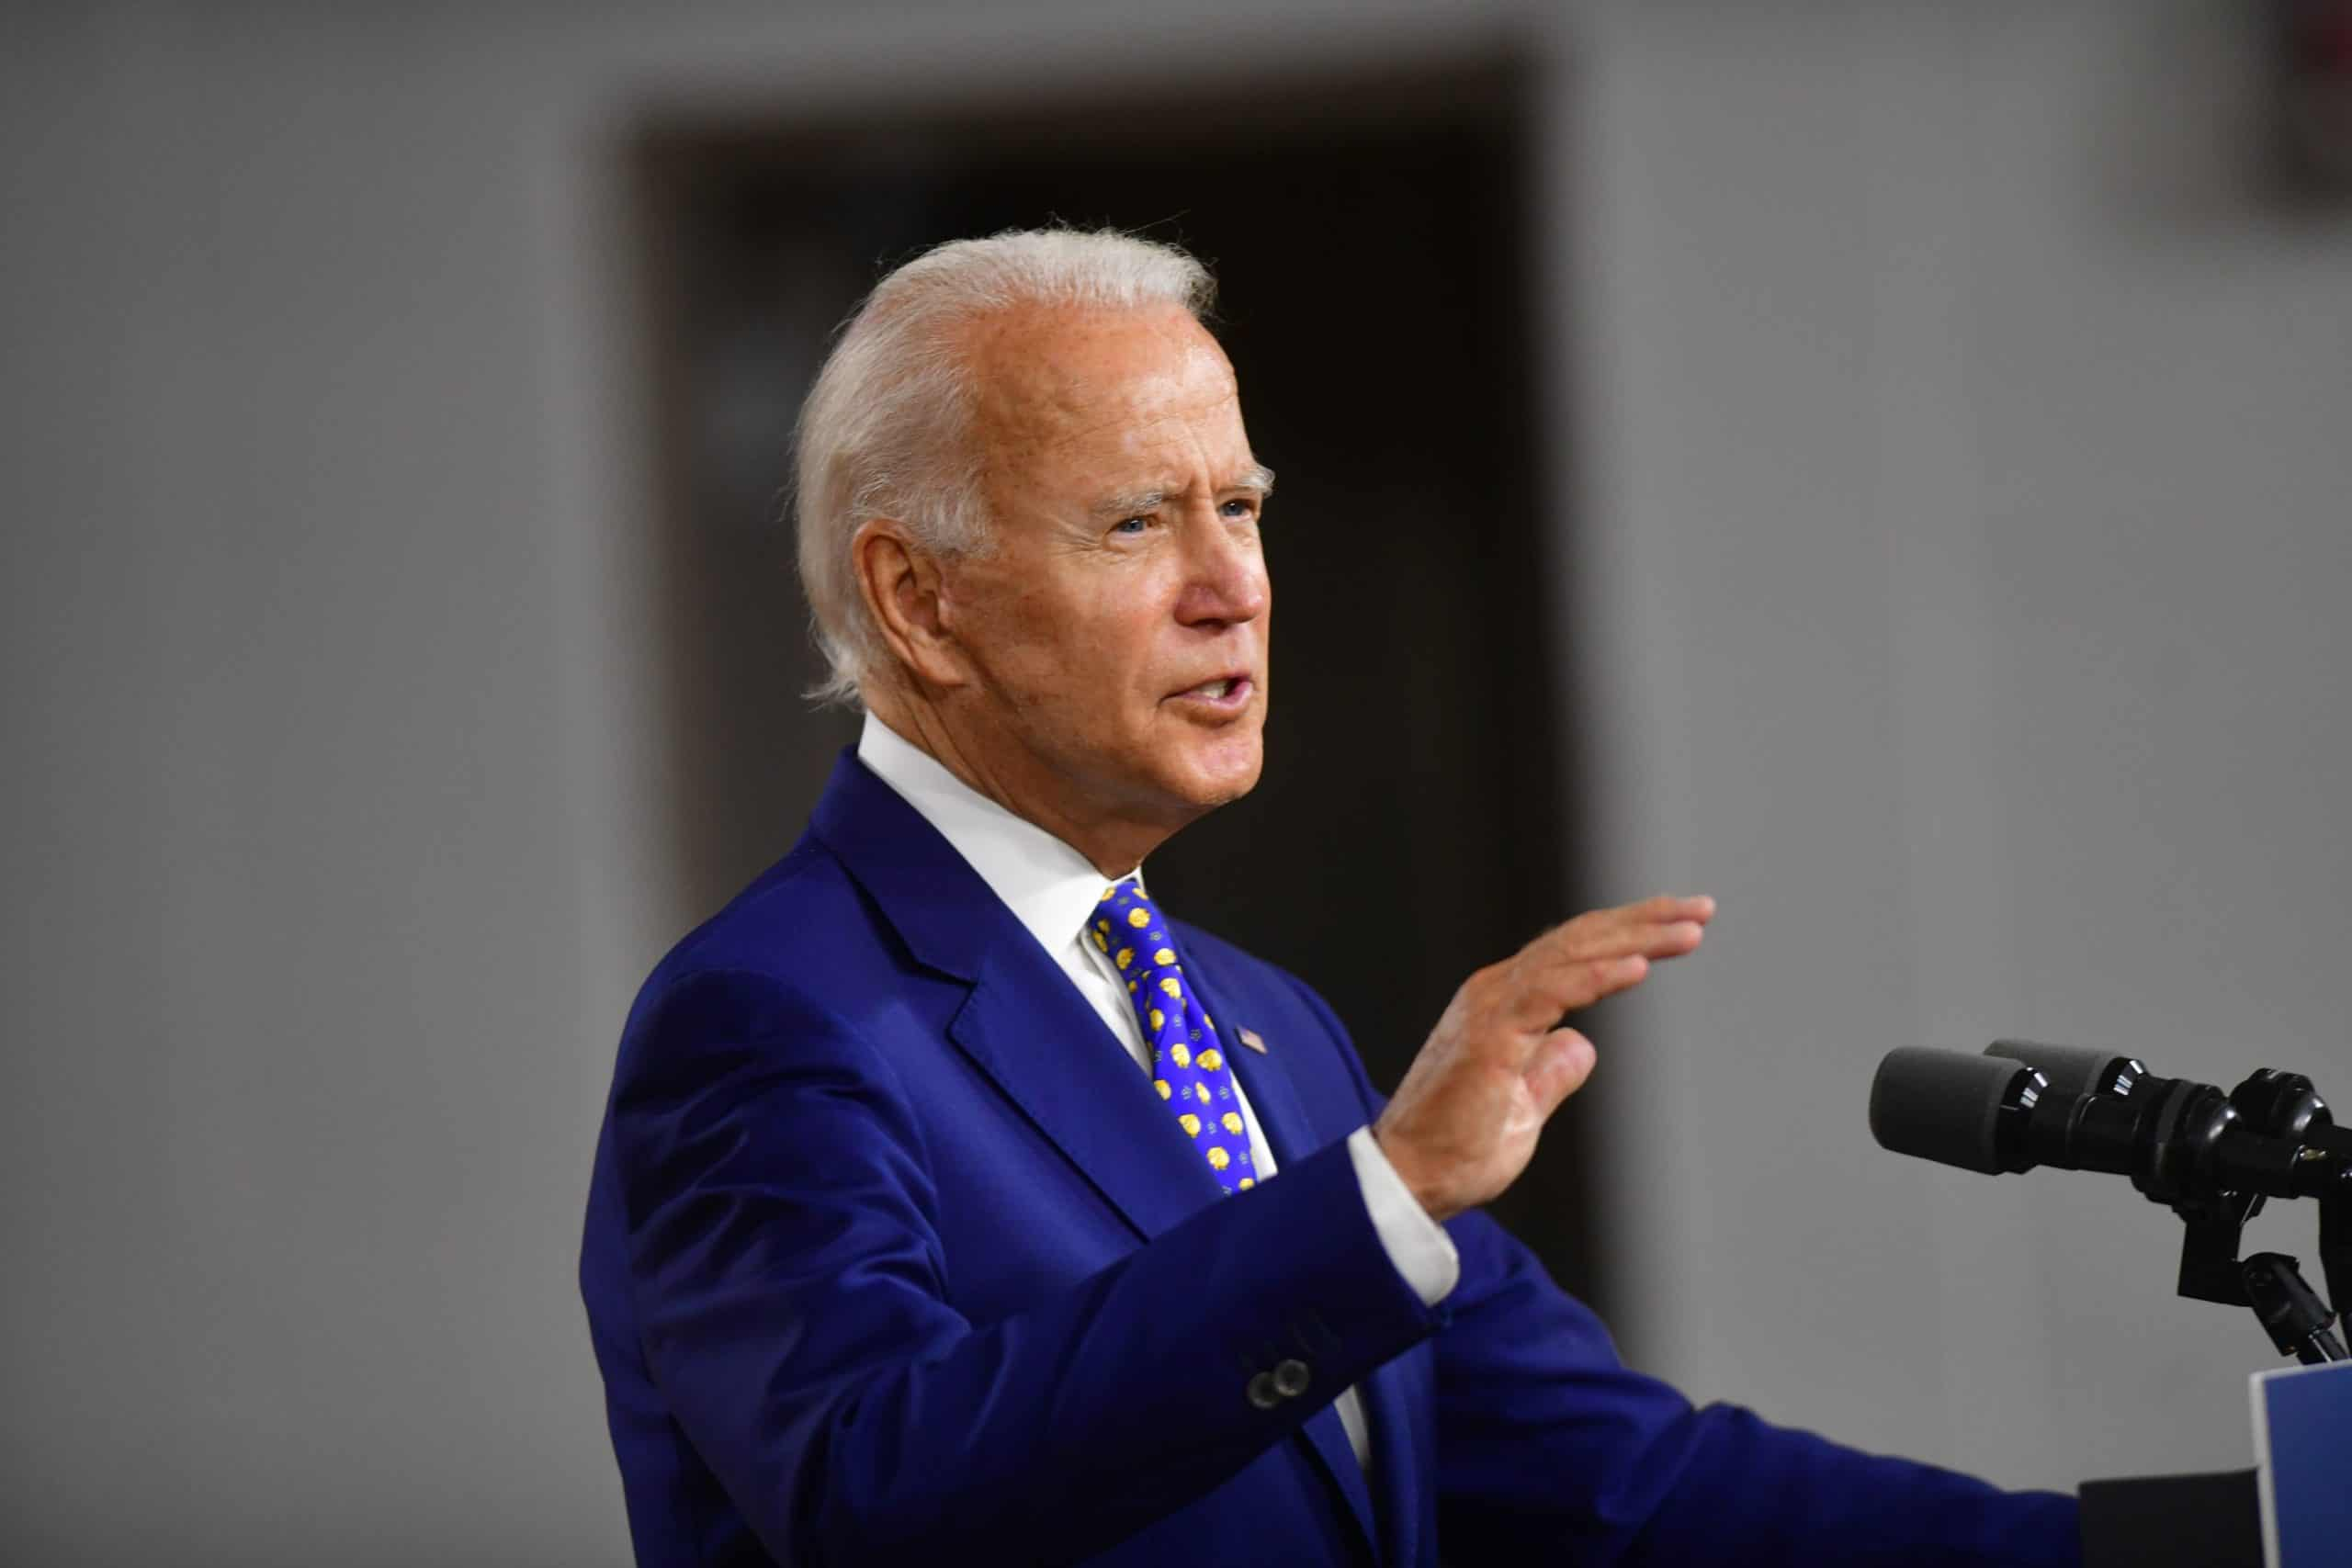 Biden Plans Texas Visit To Restore Faith In The Administration